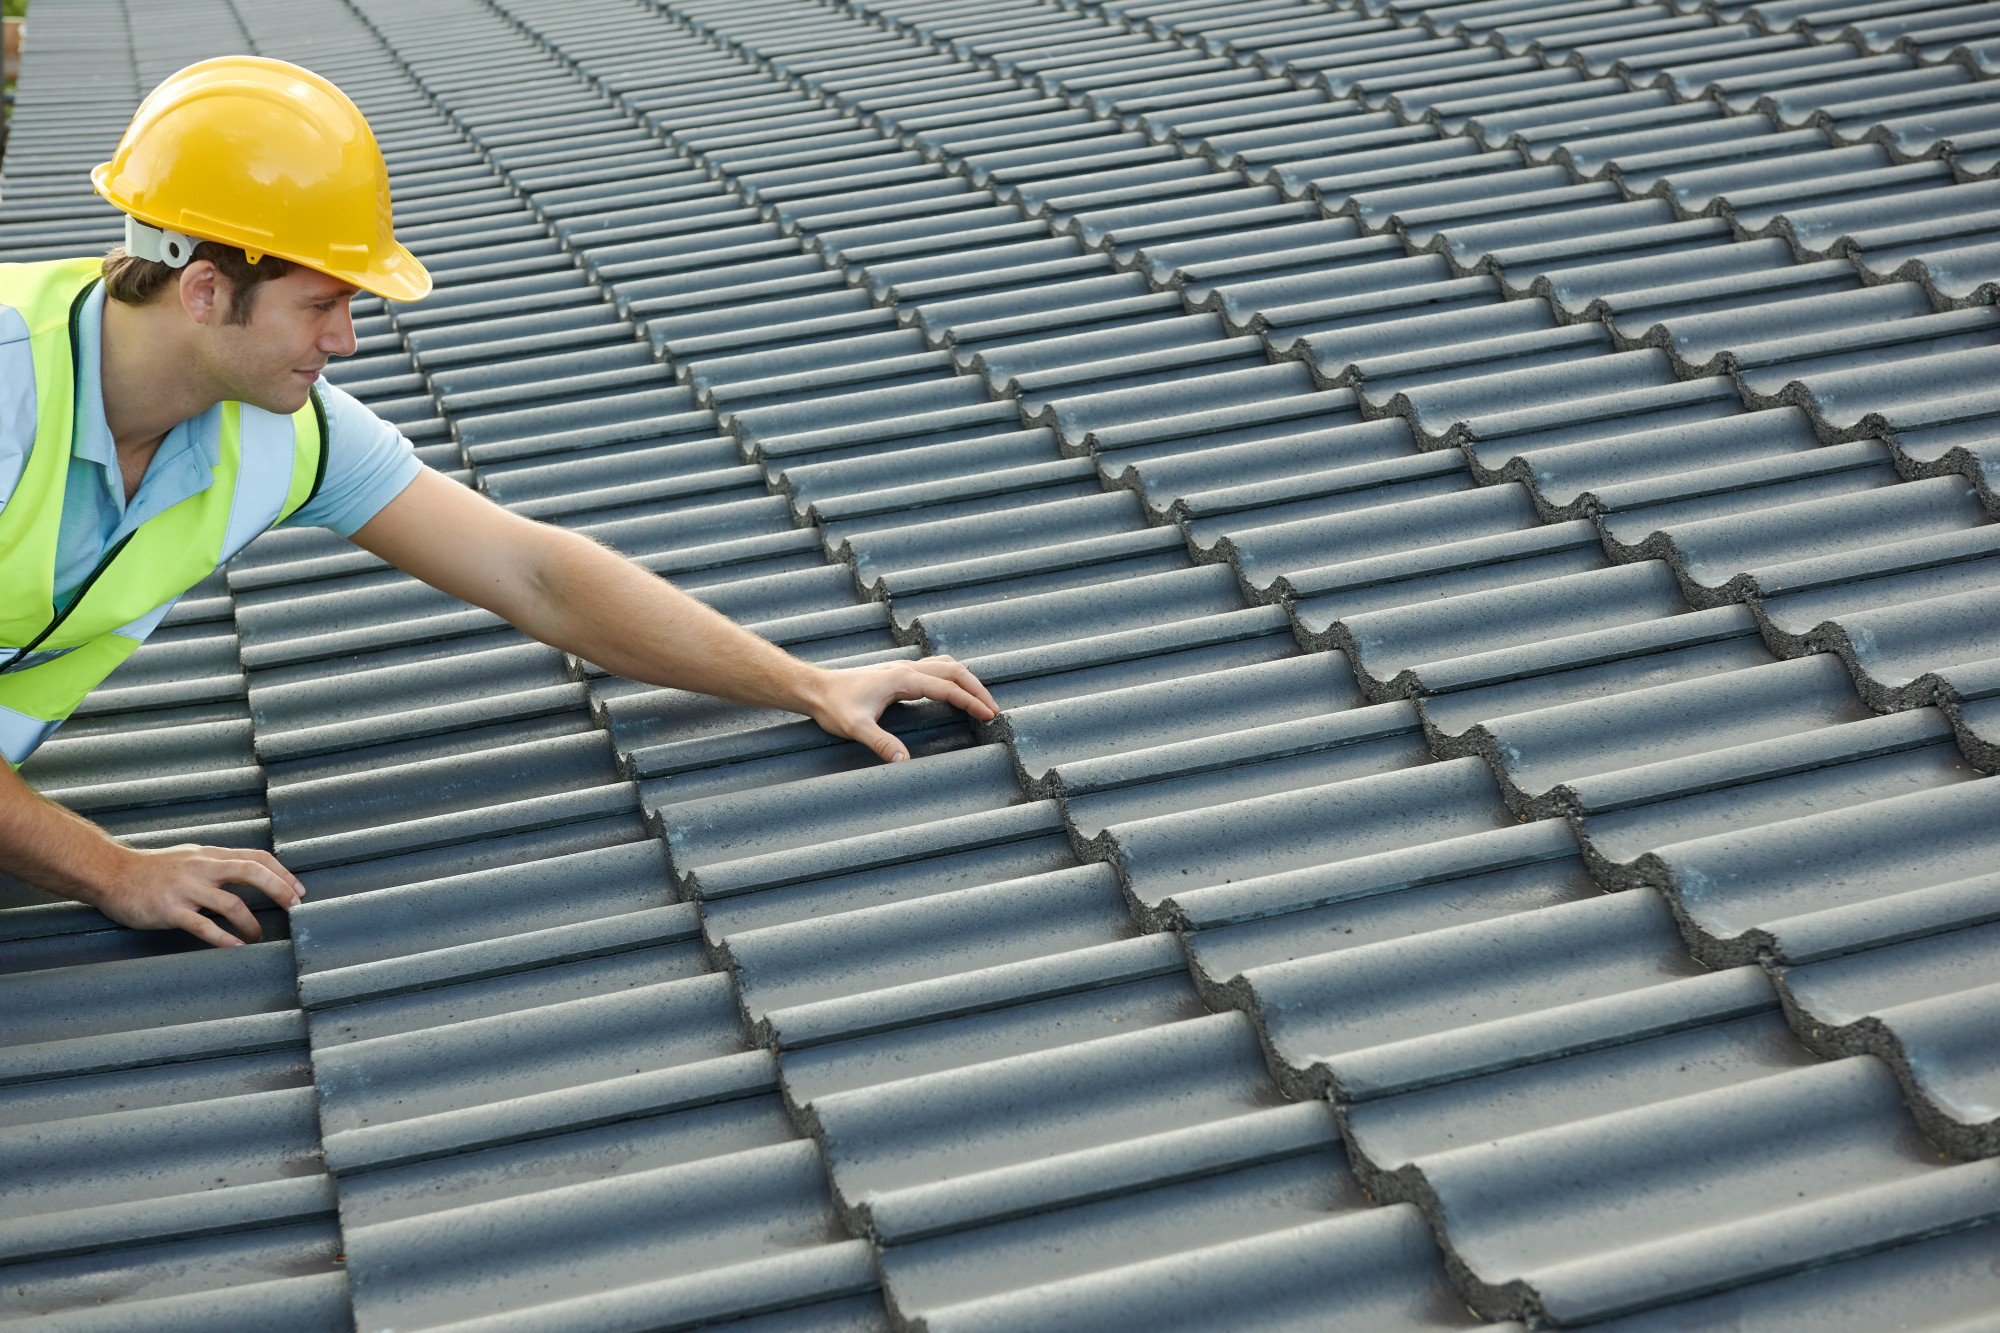 image - 3 Reasons Why You Should Consider a Tile Roof for a Home